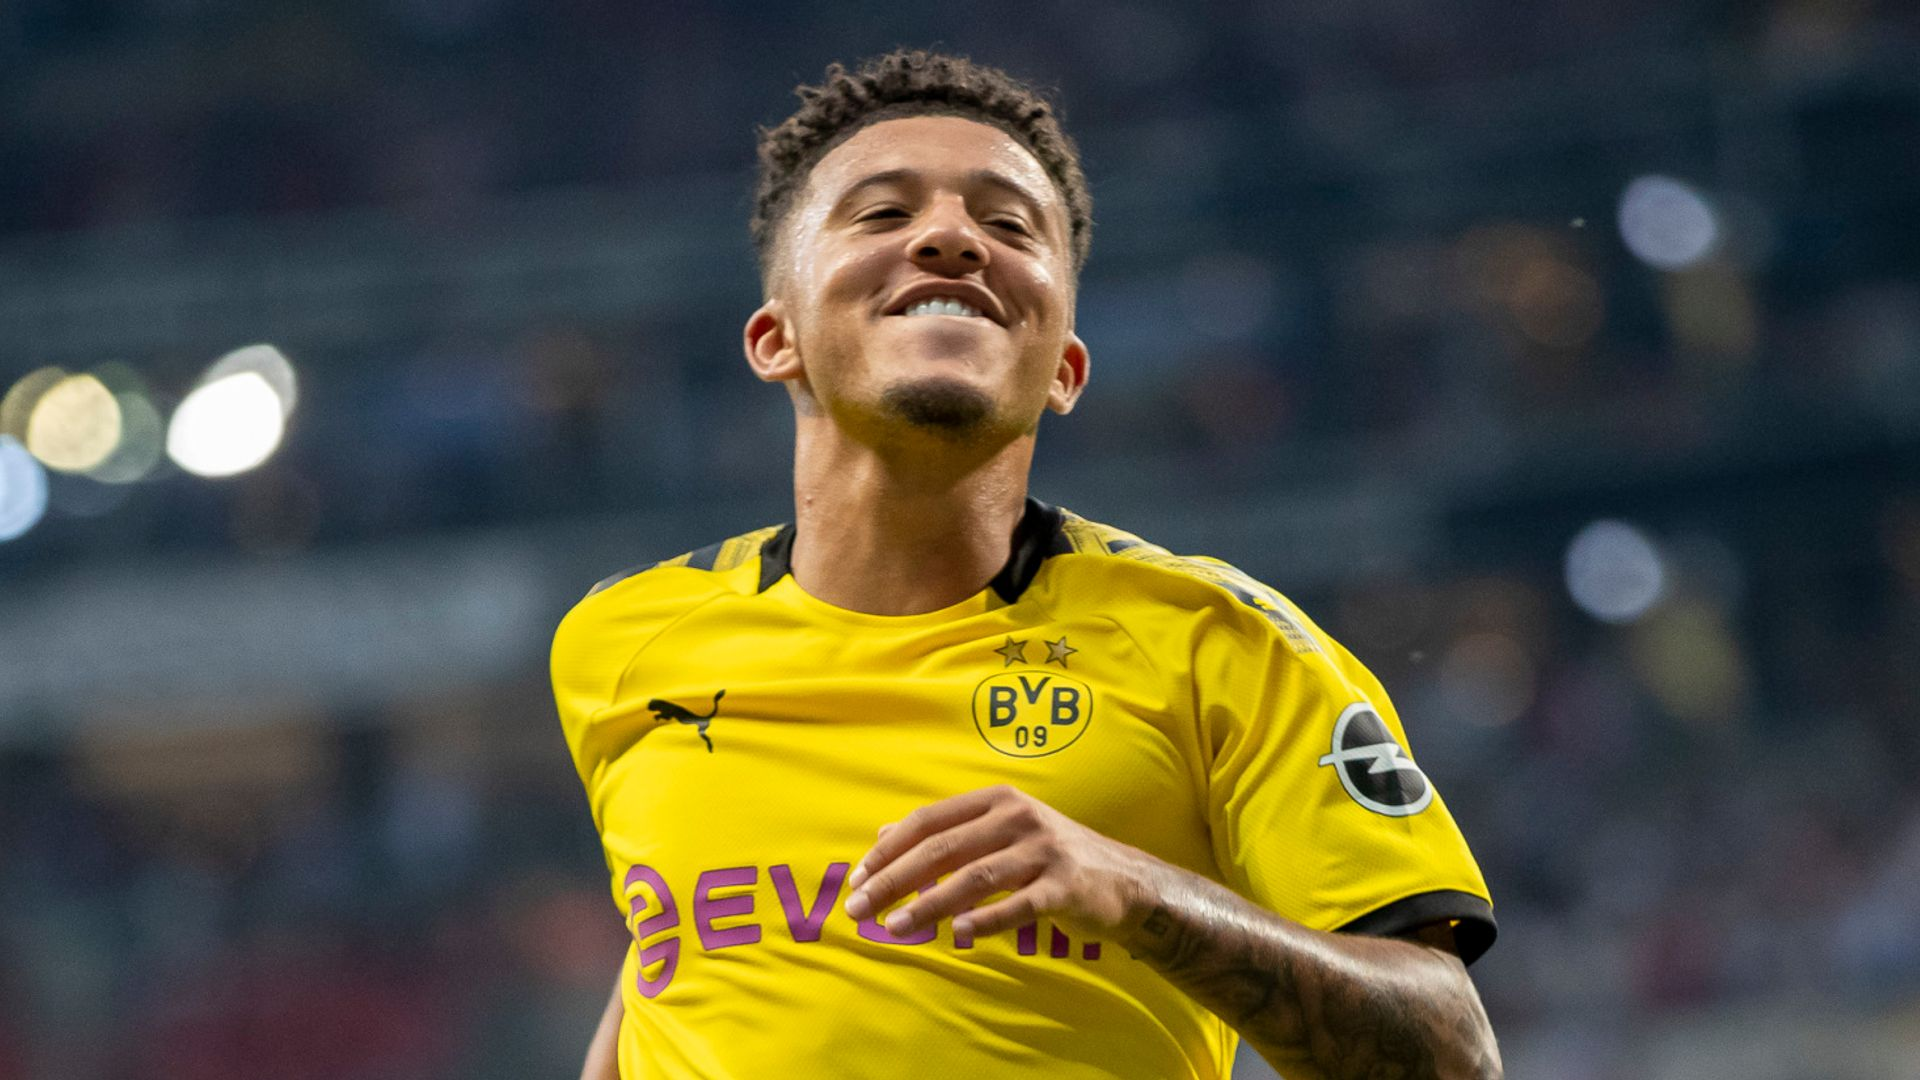 Man Utd will not pay over £50m for Sancho